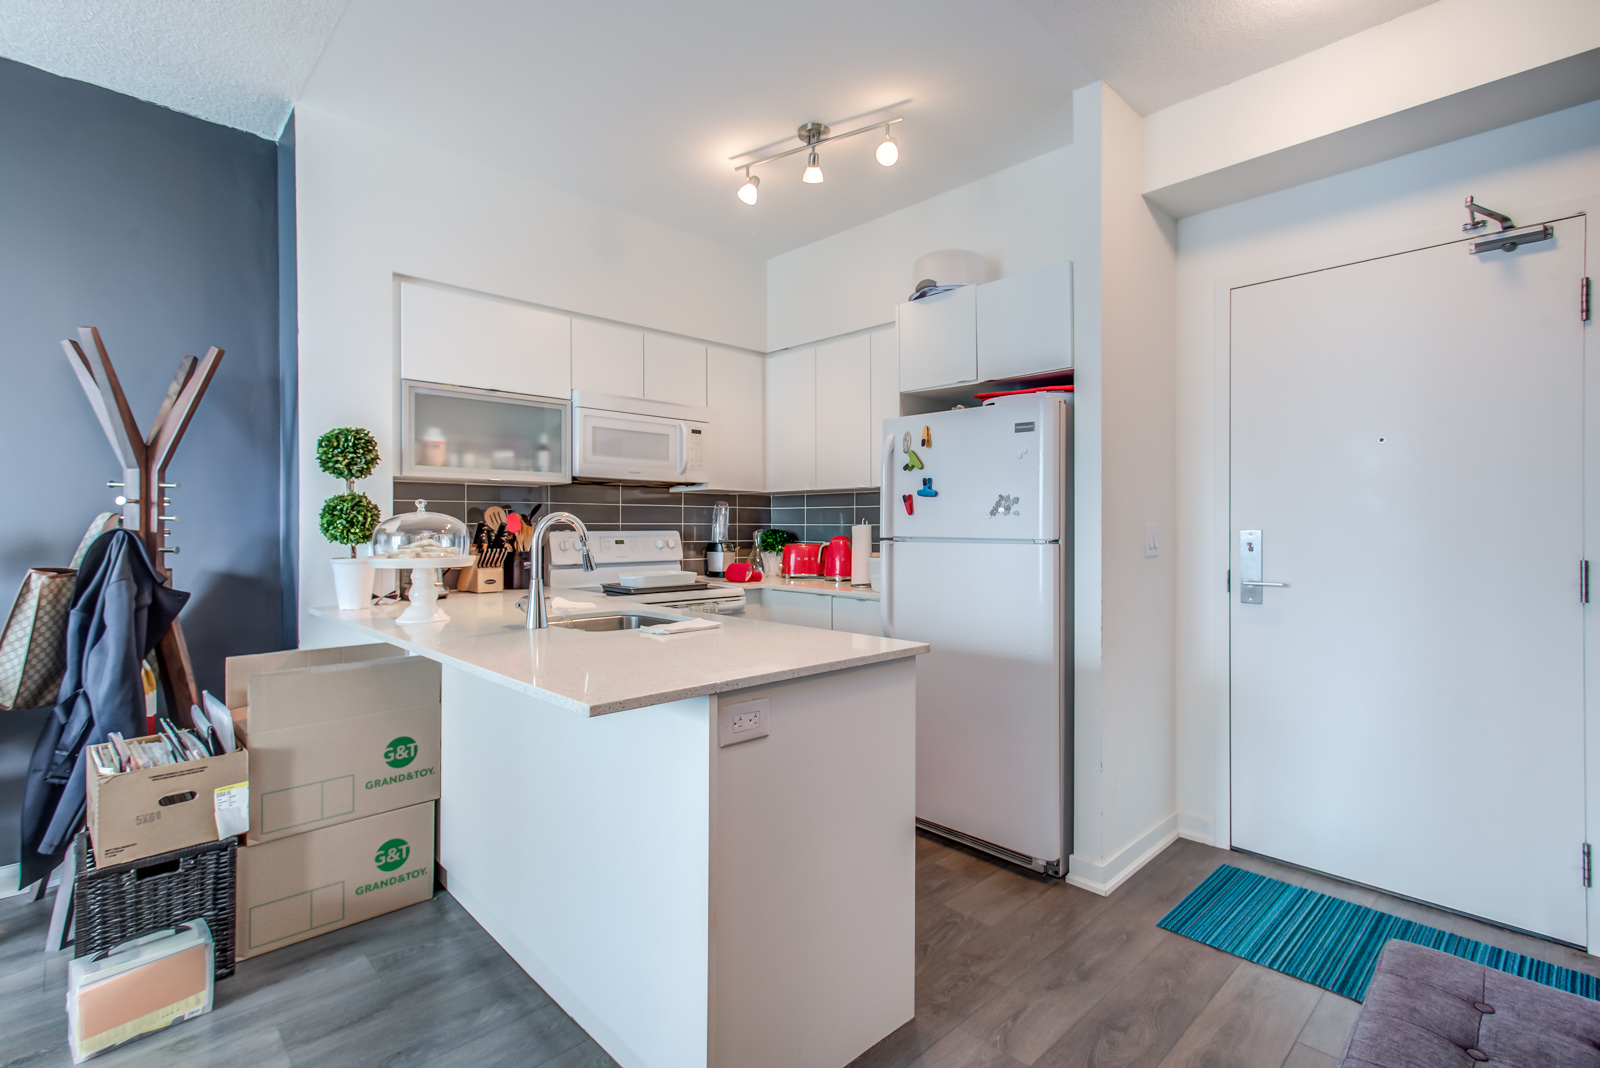 Kitchen counter and breakfast bar at 150 East Liberty St Unit 1616.